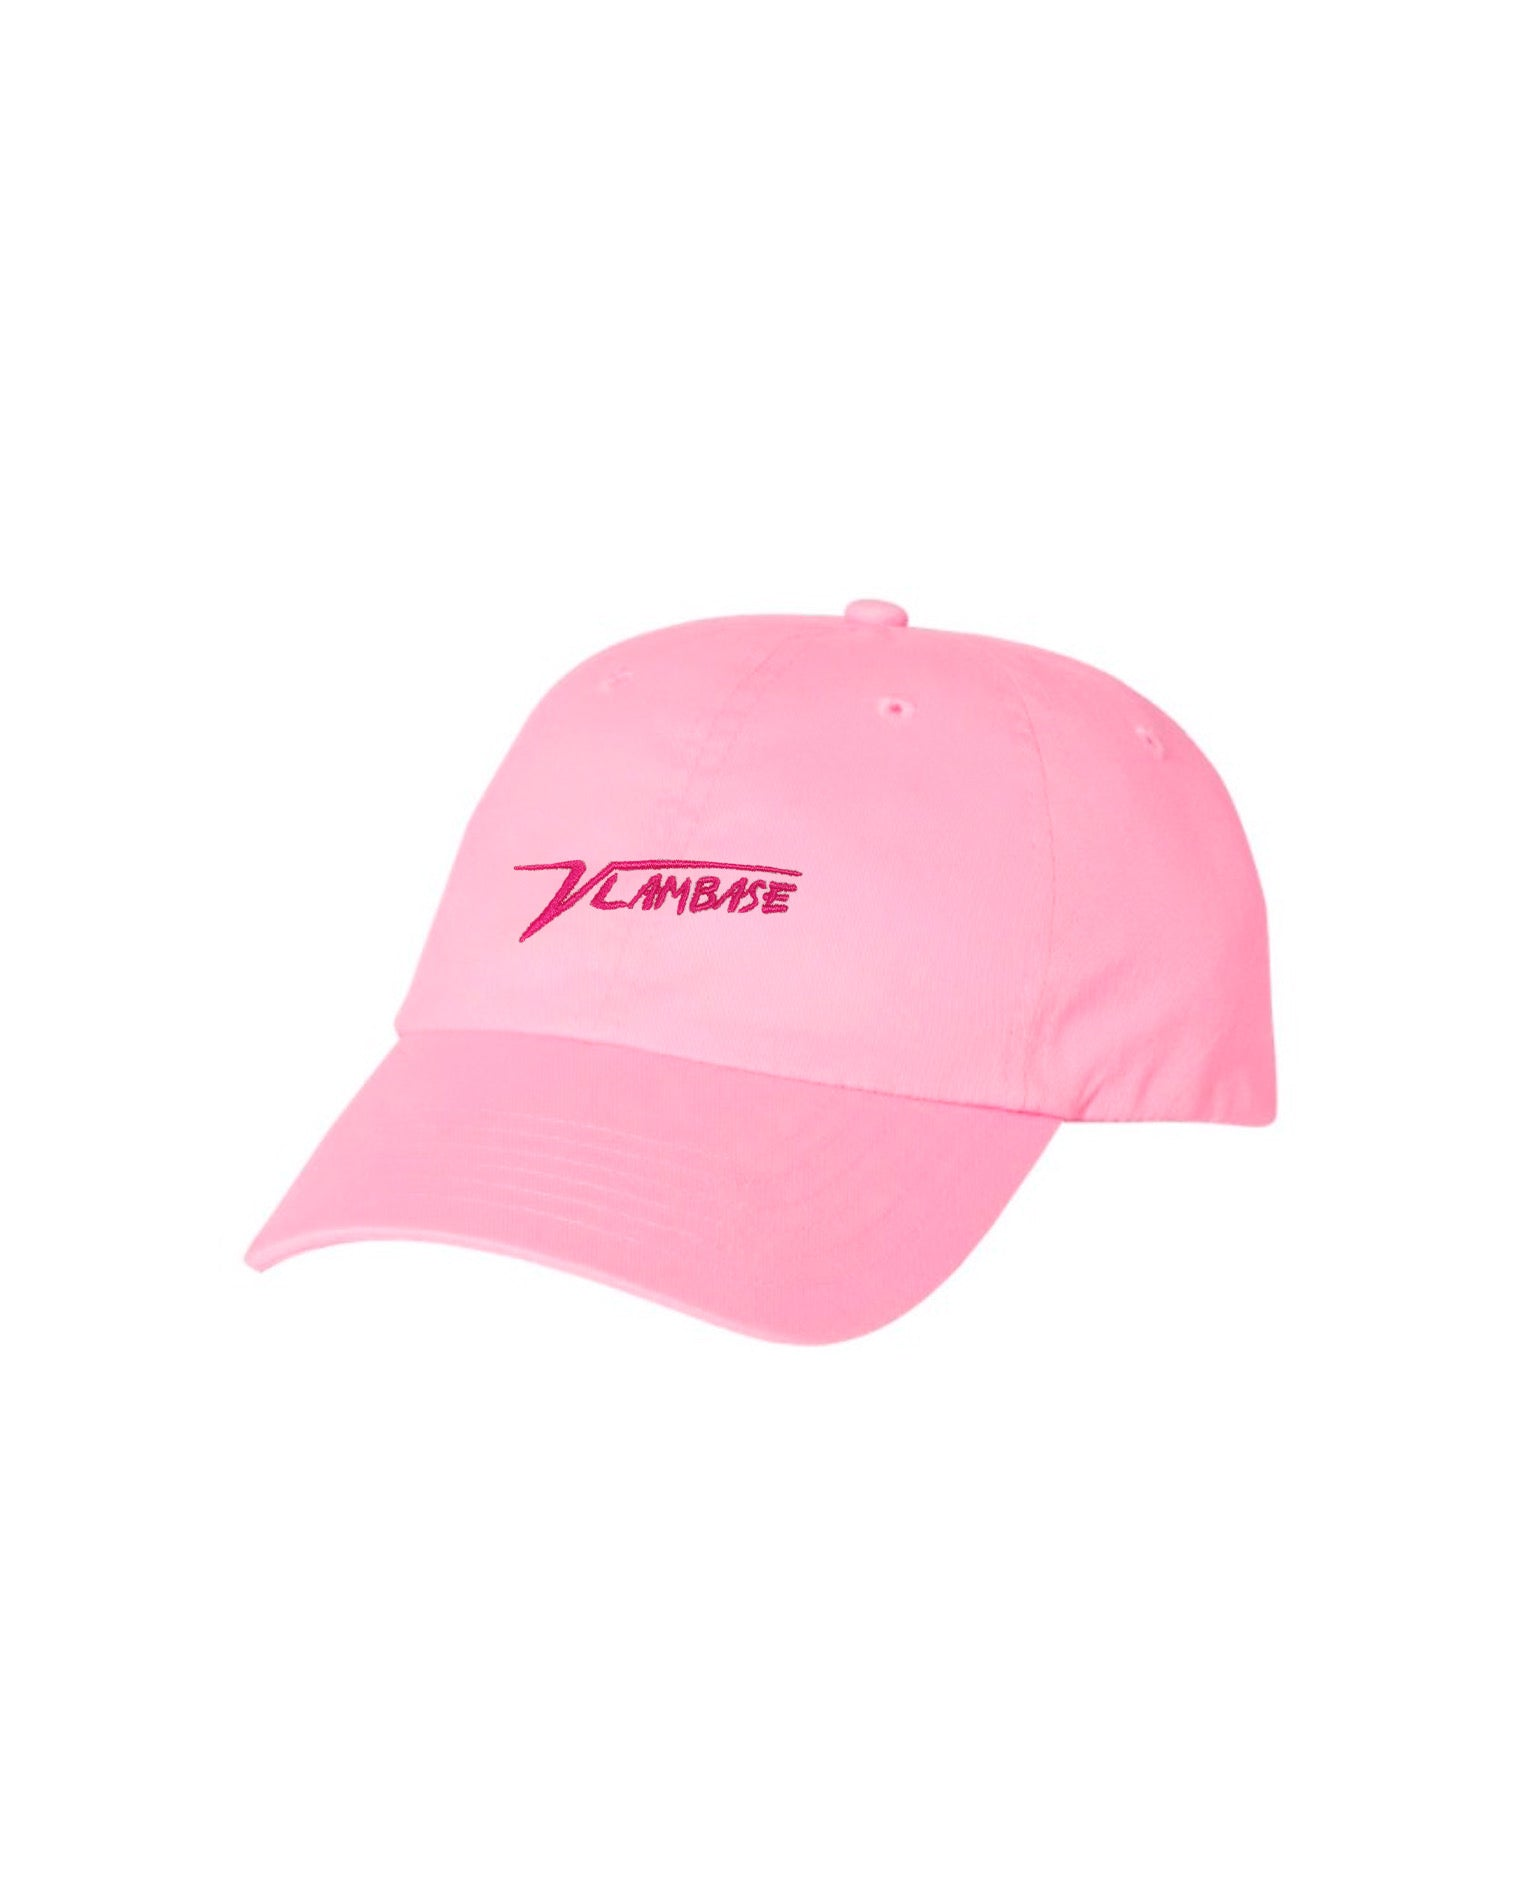 VLAMBASE DAD HAT PINK